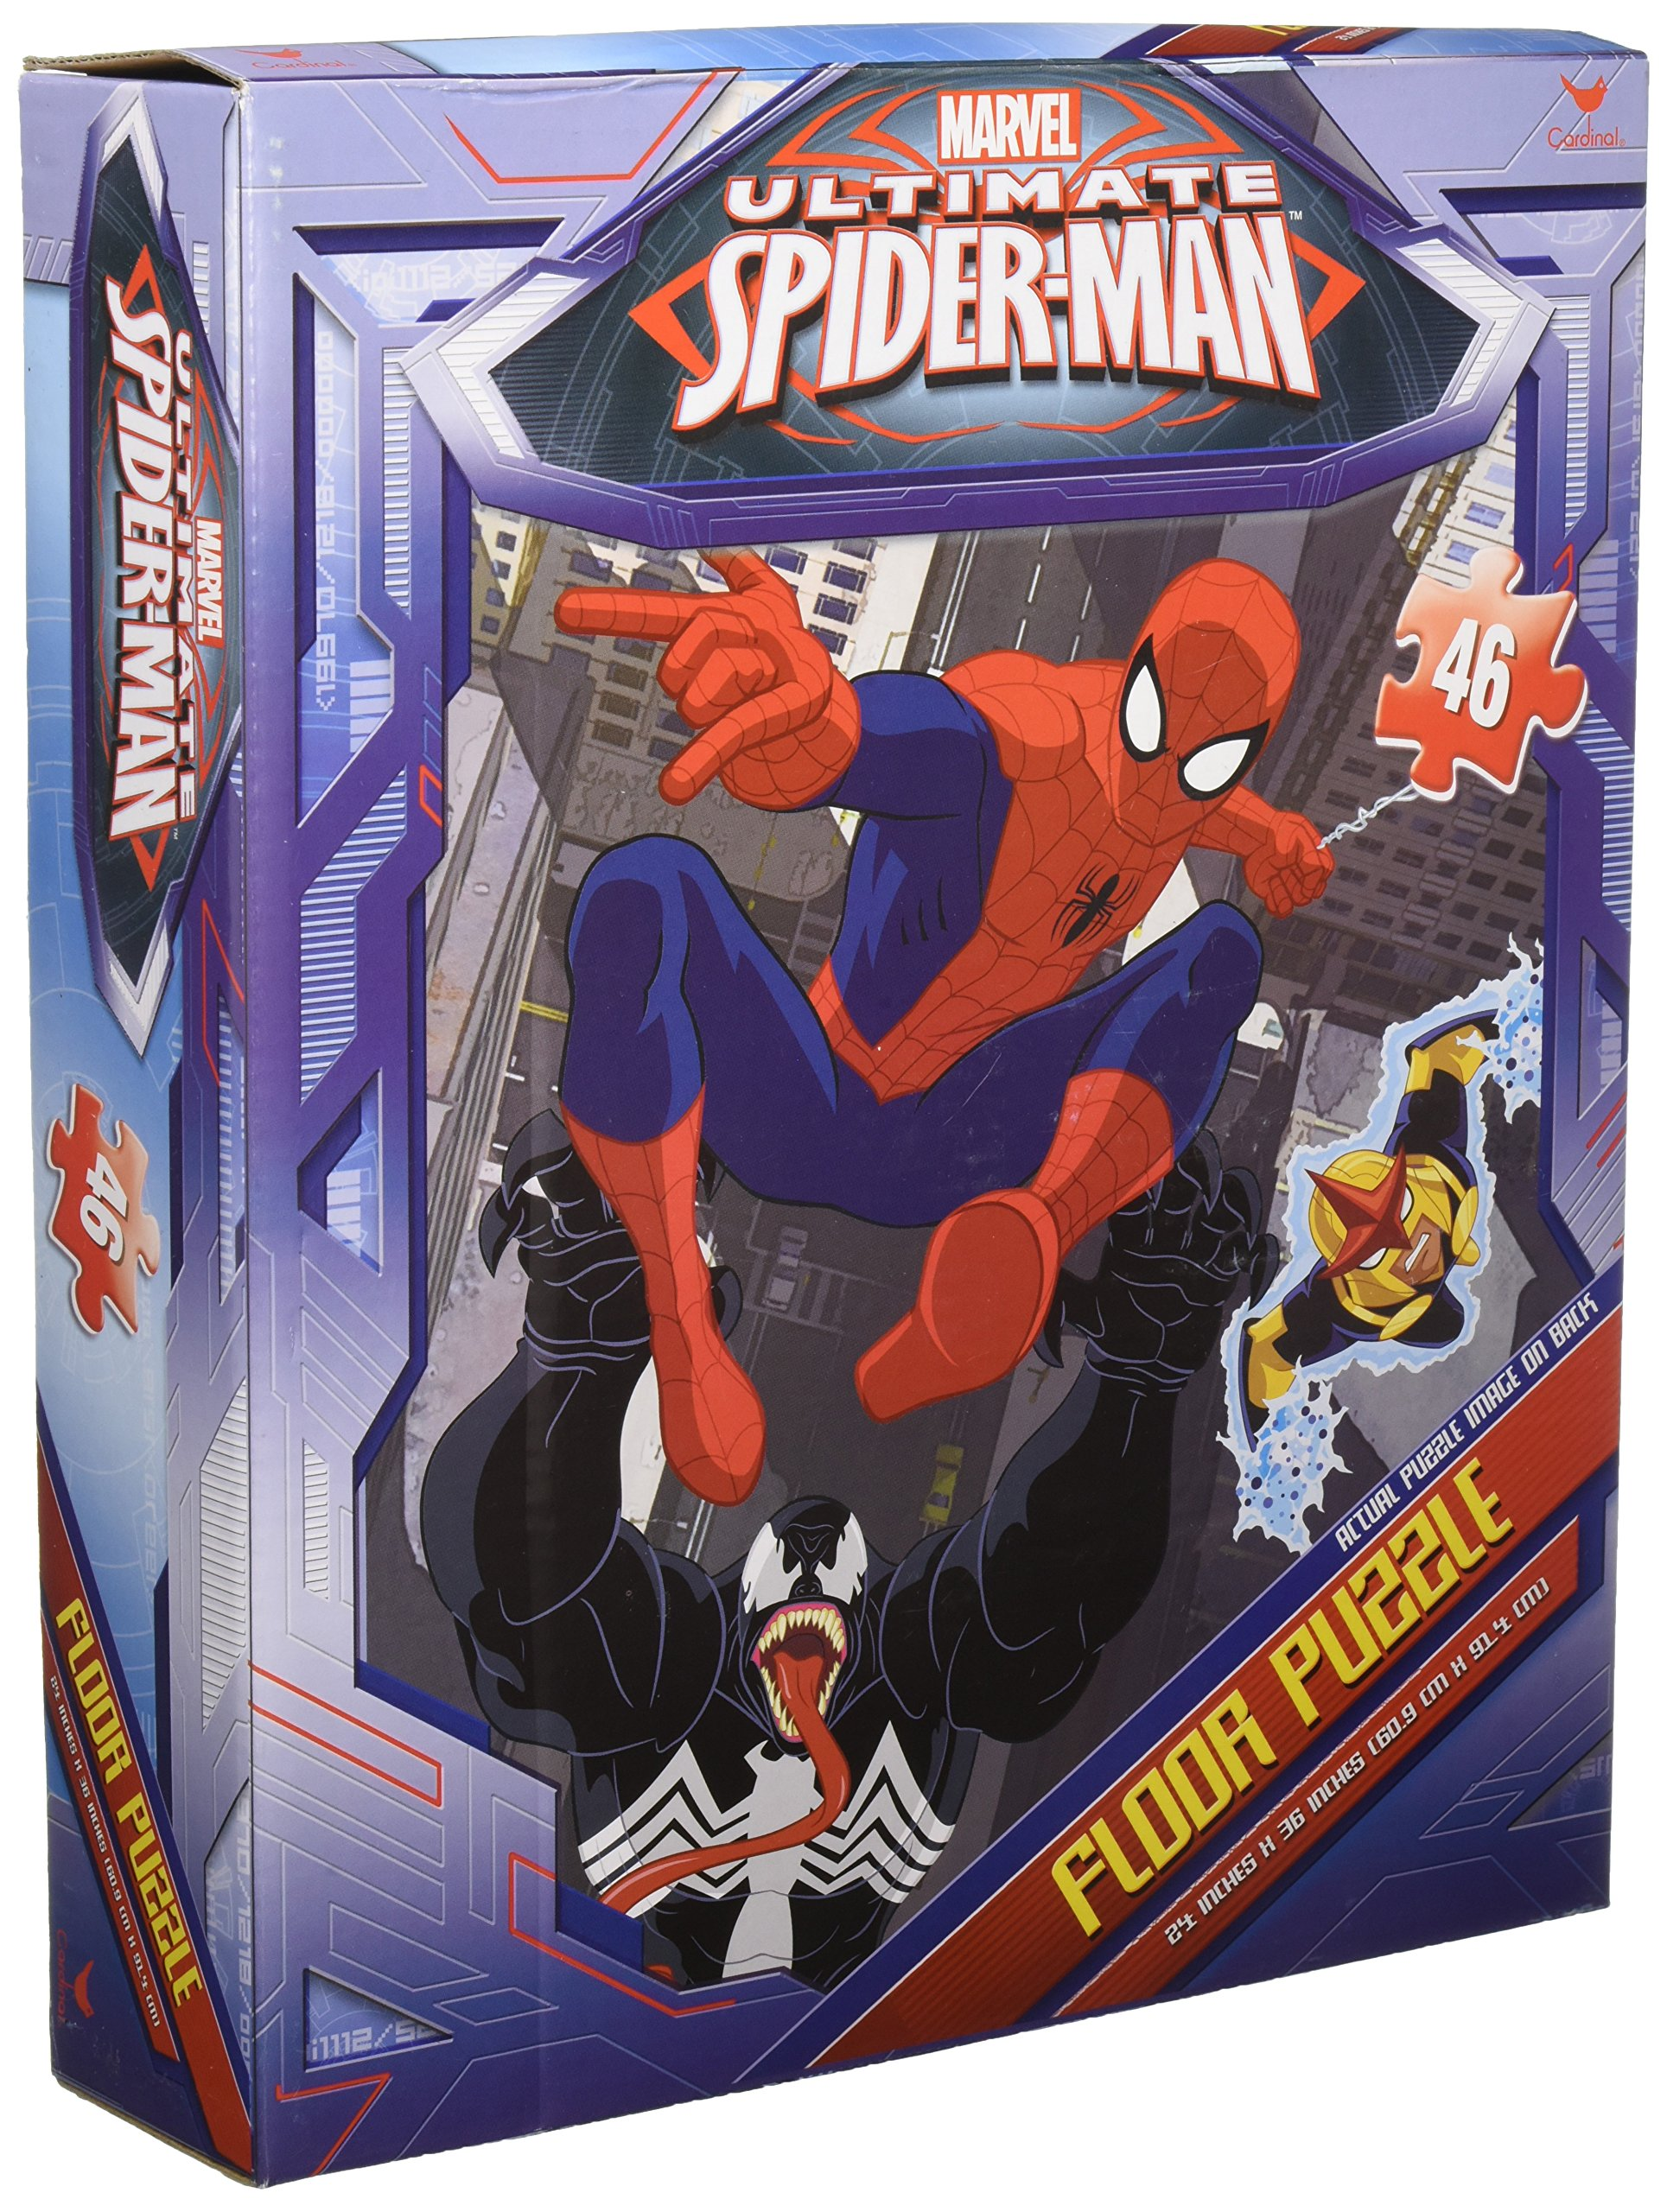 Spiderman Floor Puzzle 46 Count, styles will vary by Spider-Man